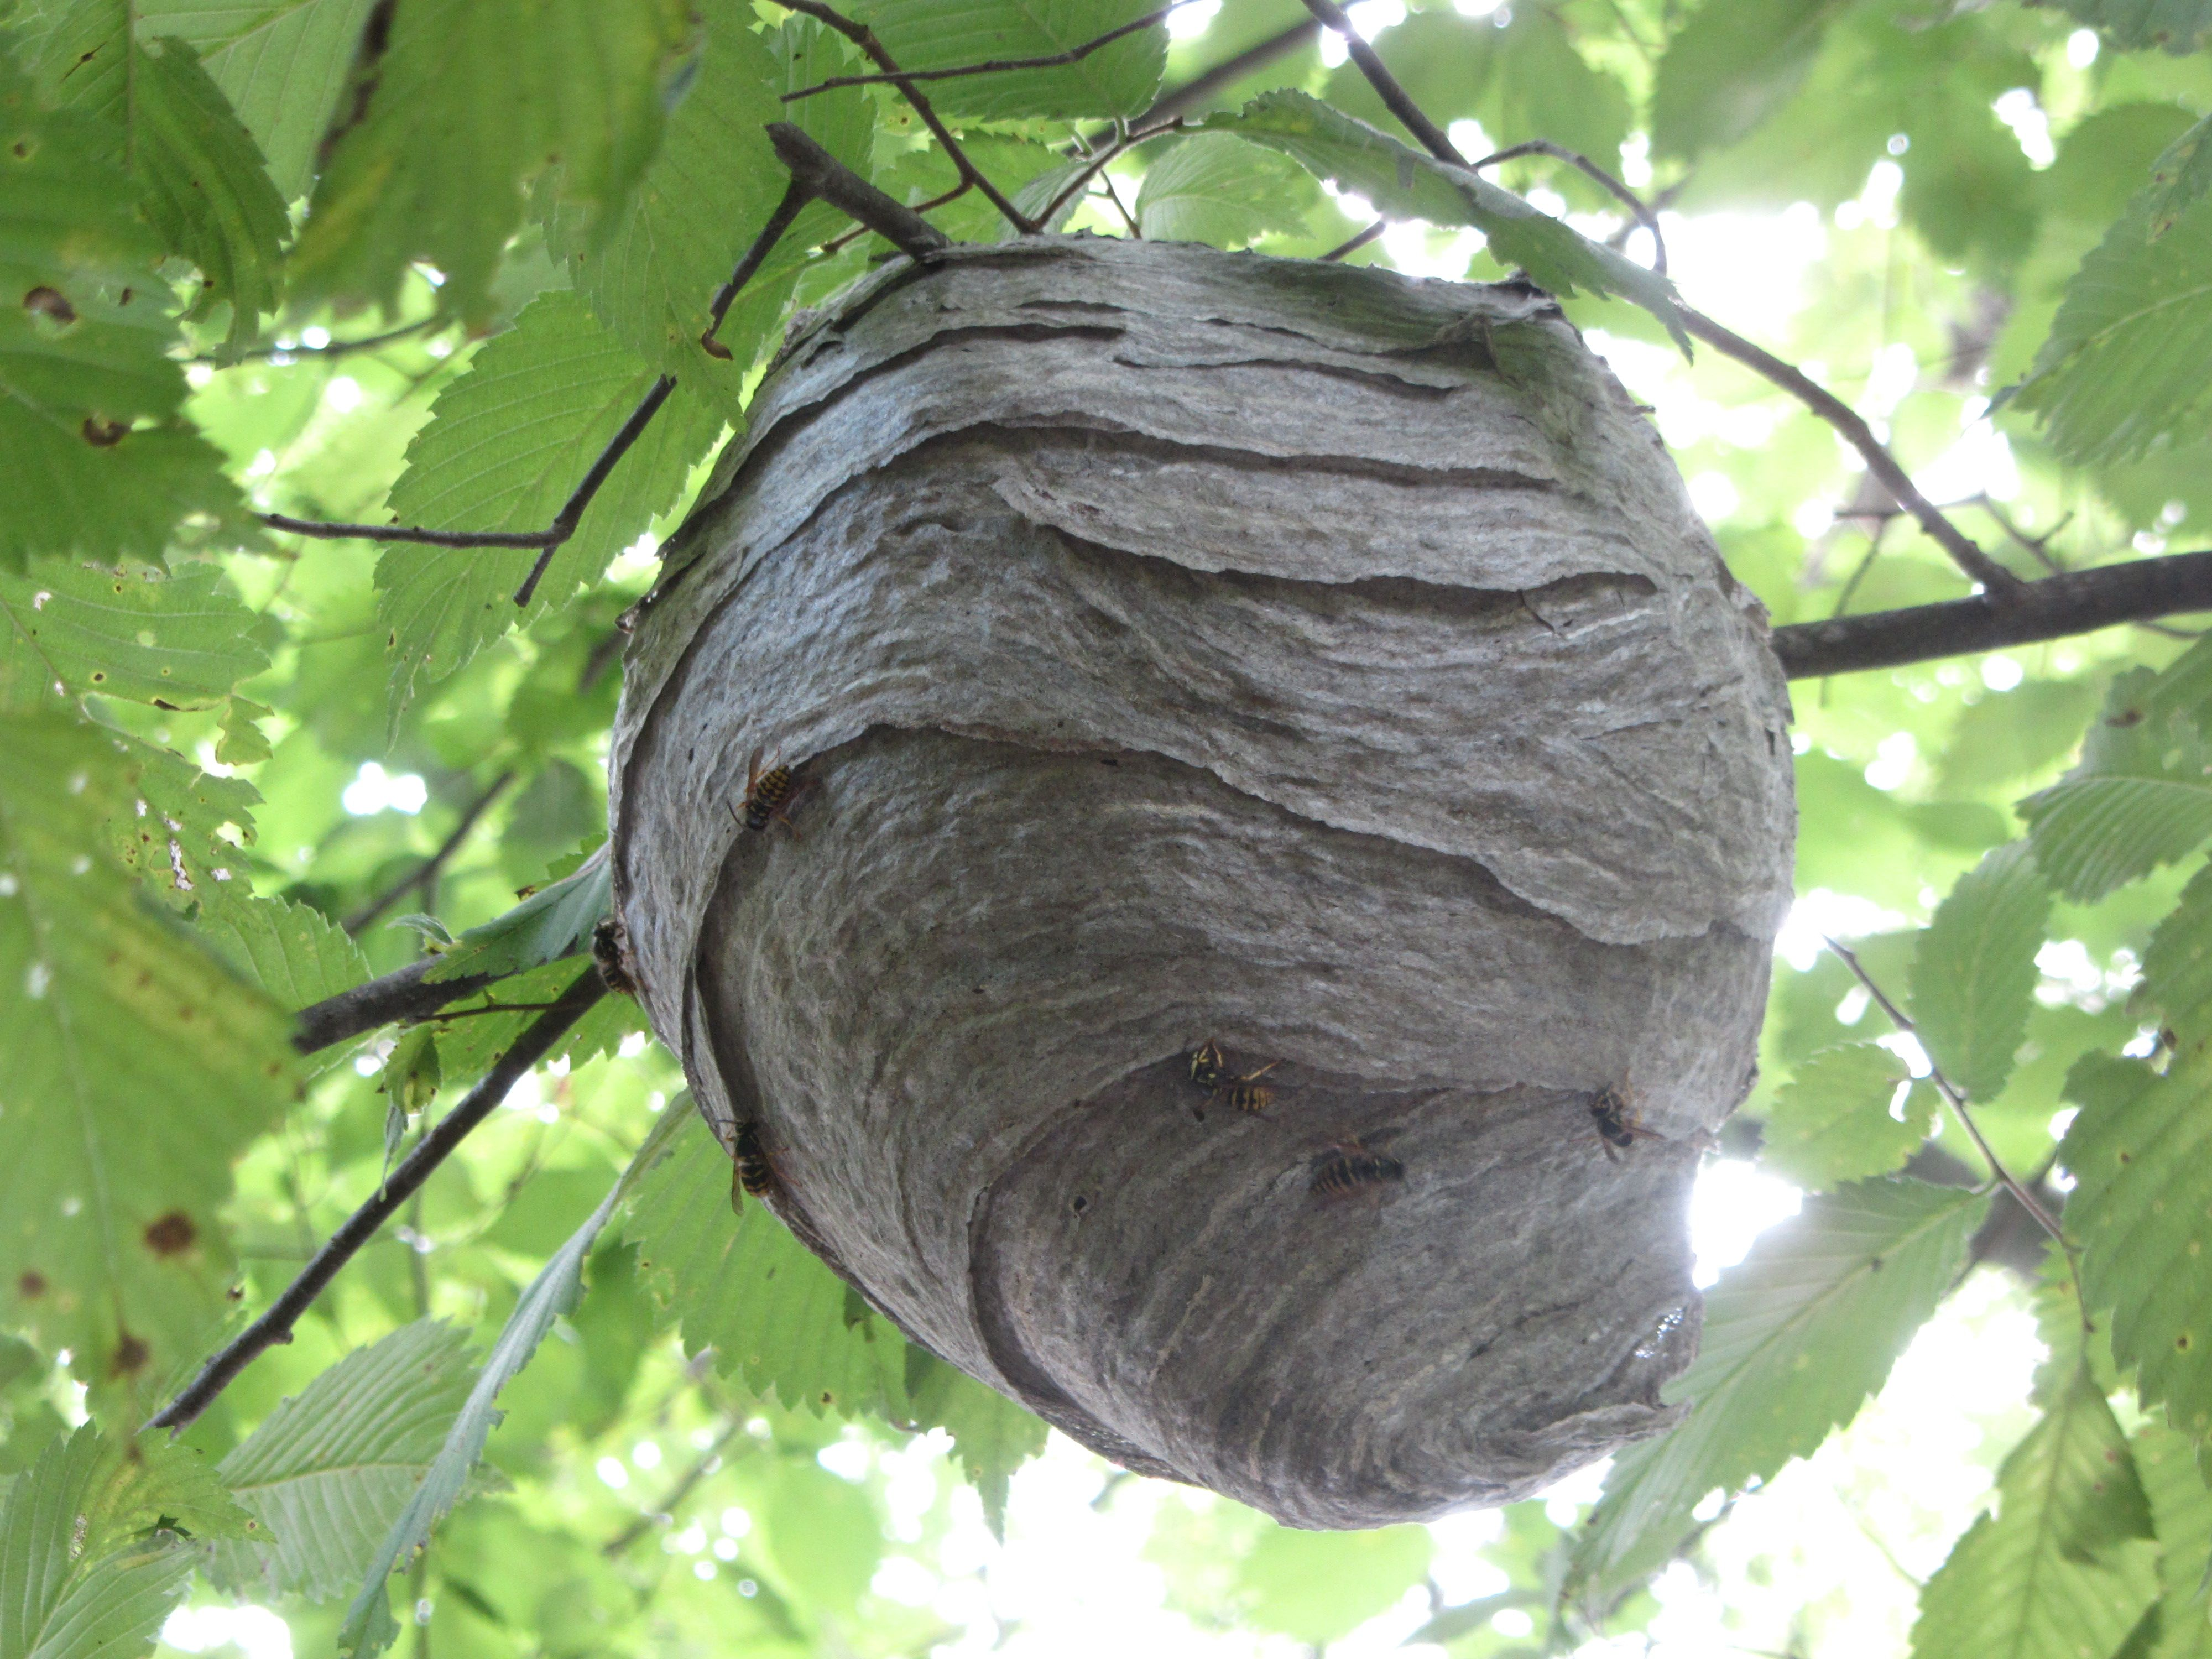 Wasp Nests - Identification And What To Do About Them